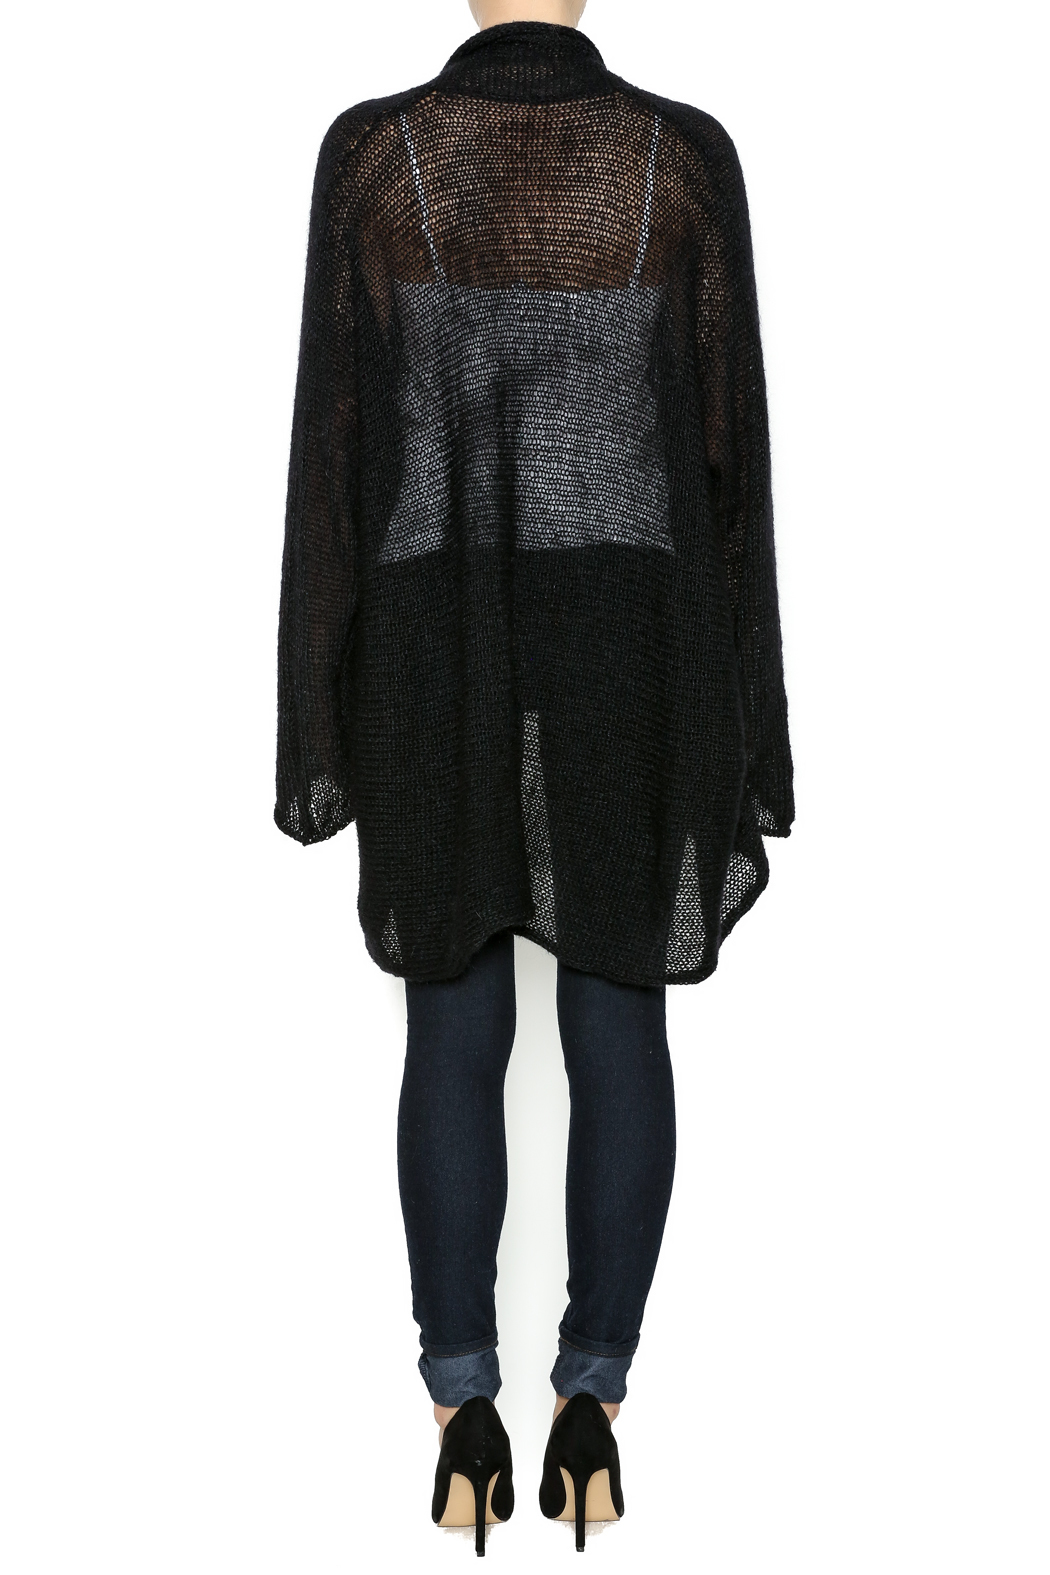 DC KNITS Black Mohair Cardigan - Side Cropped Image